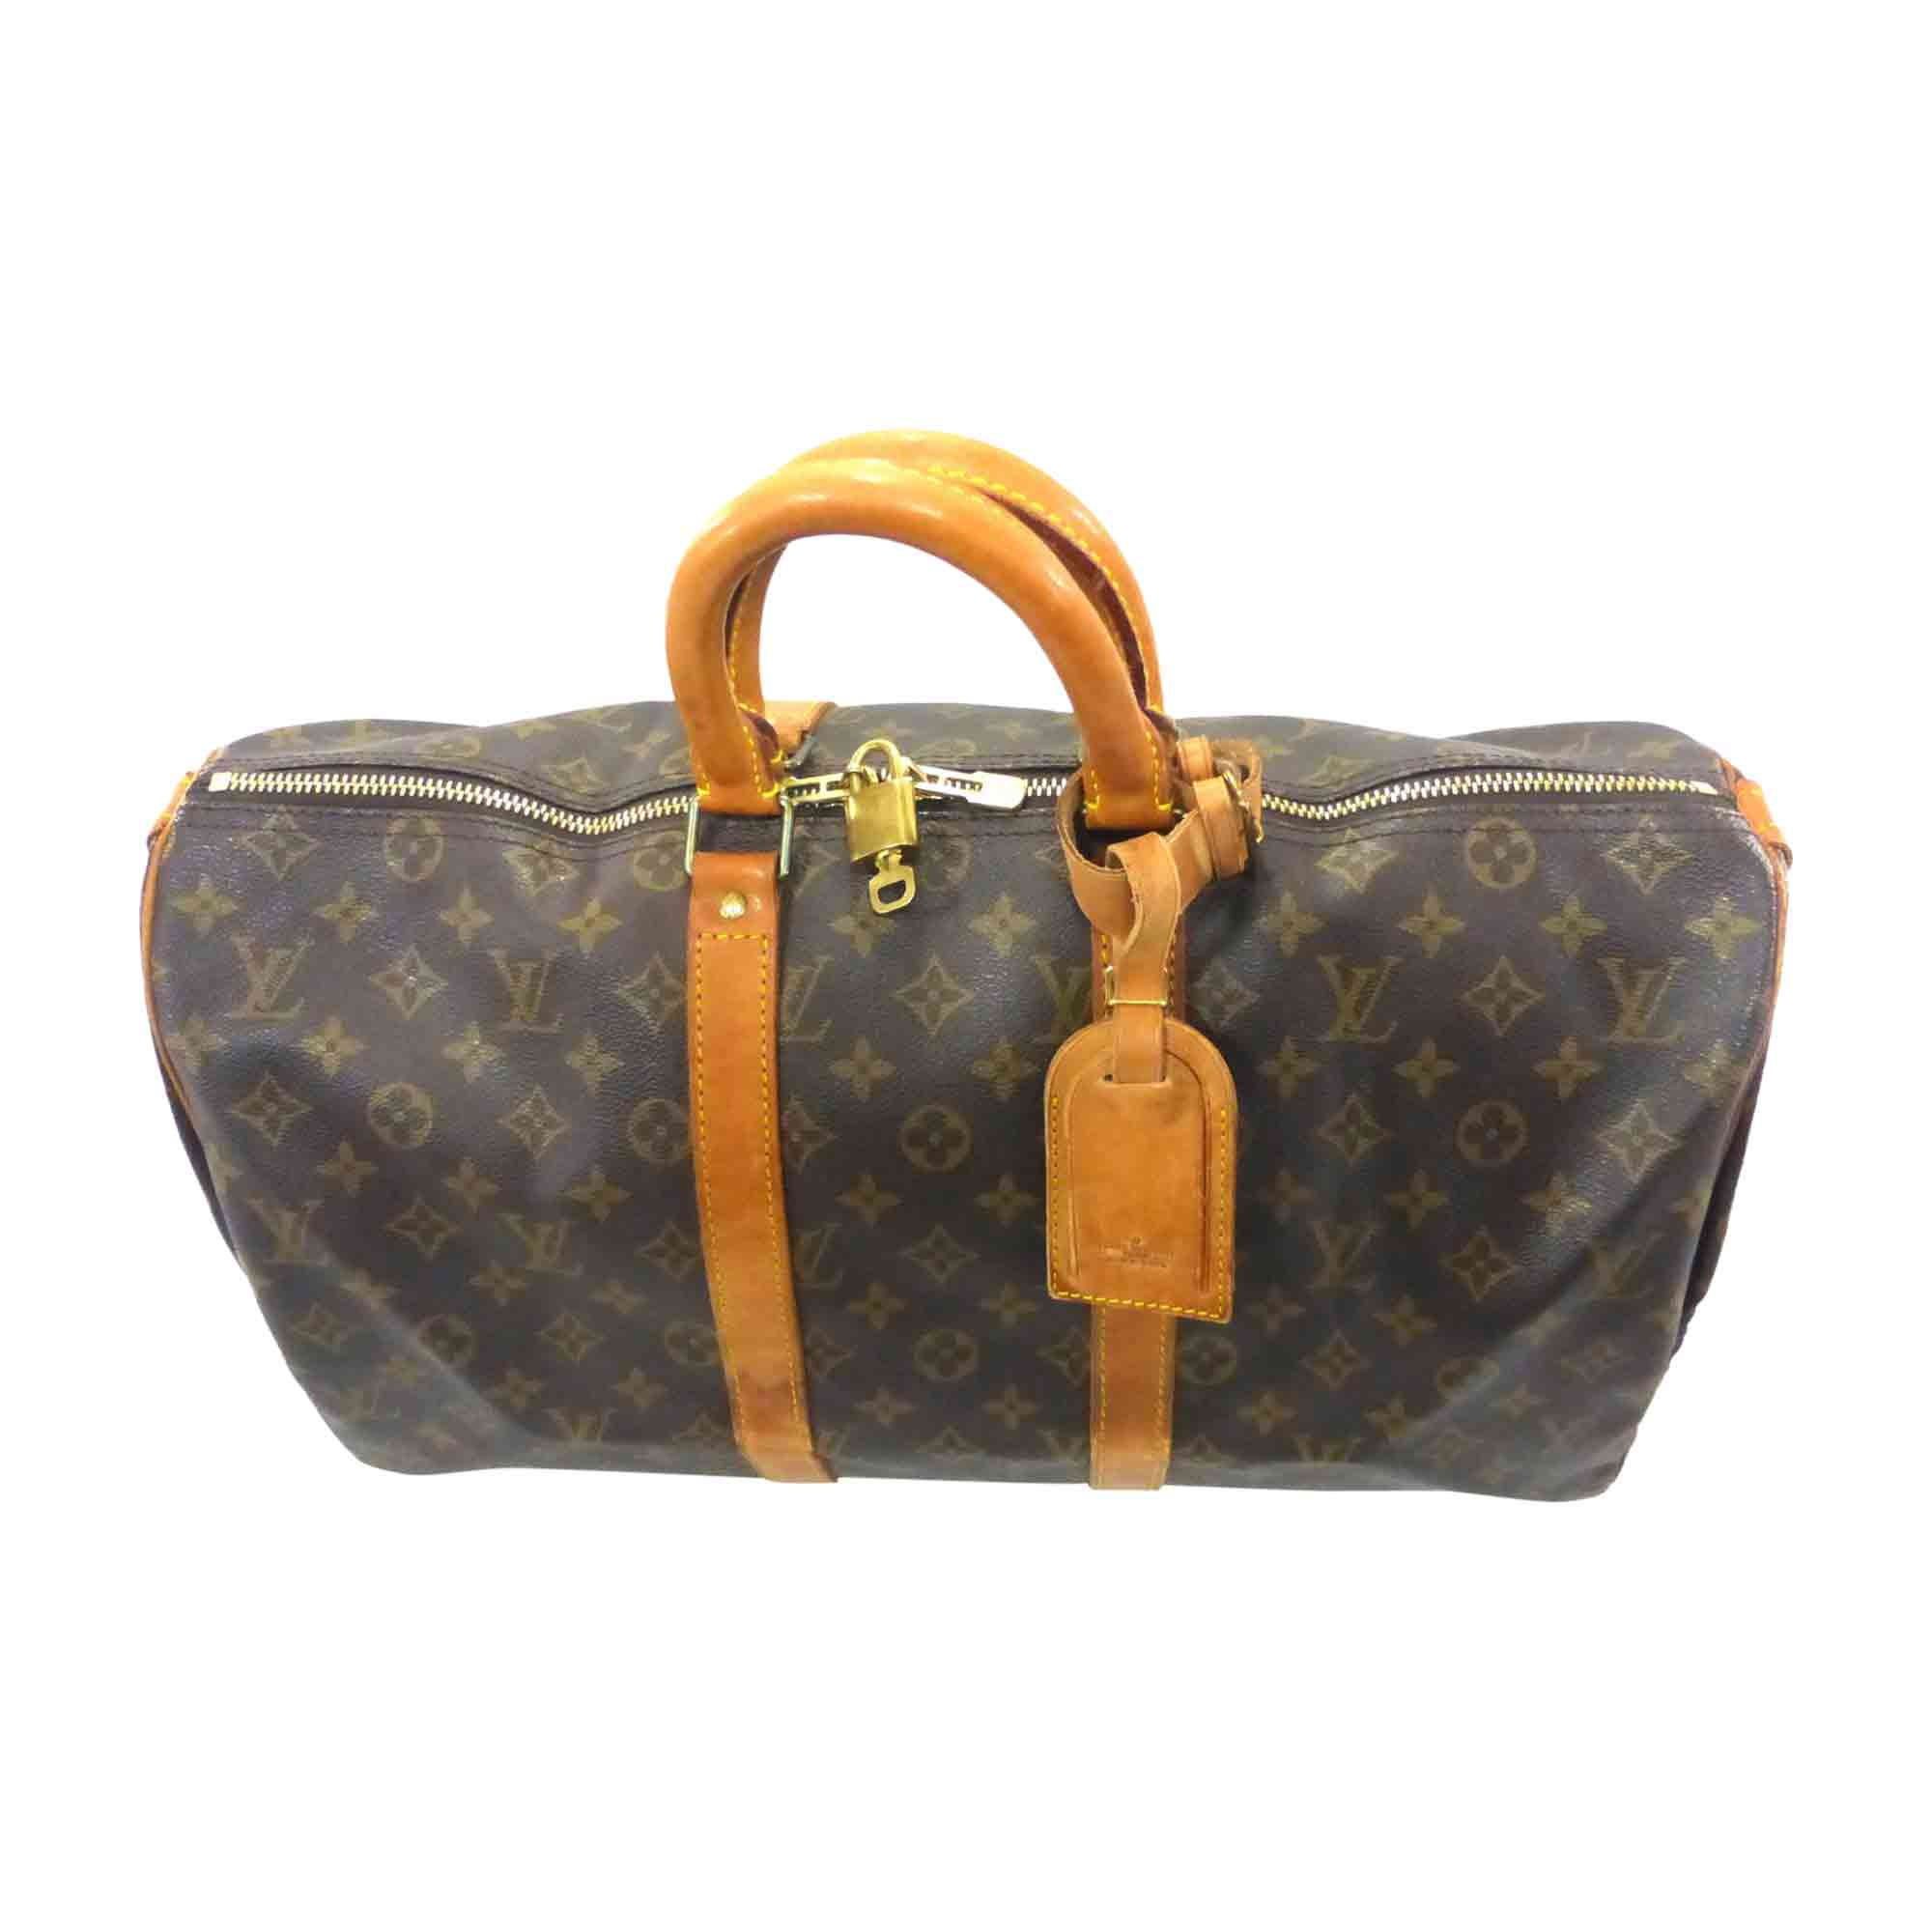 Leather Oversize Bag LOUIS VUITTON Keepall Brown